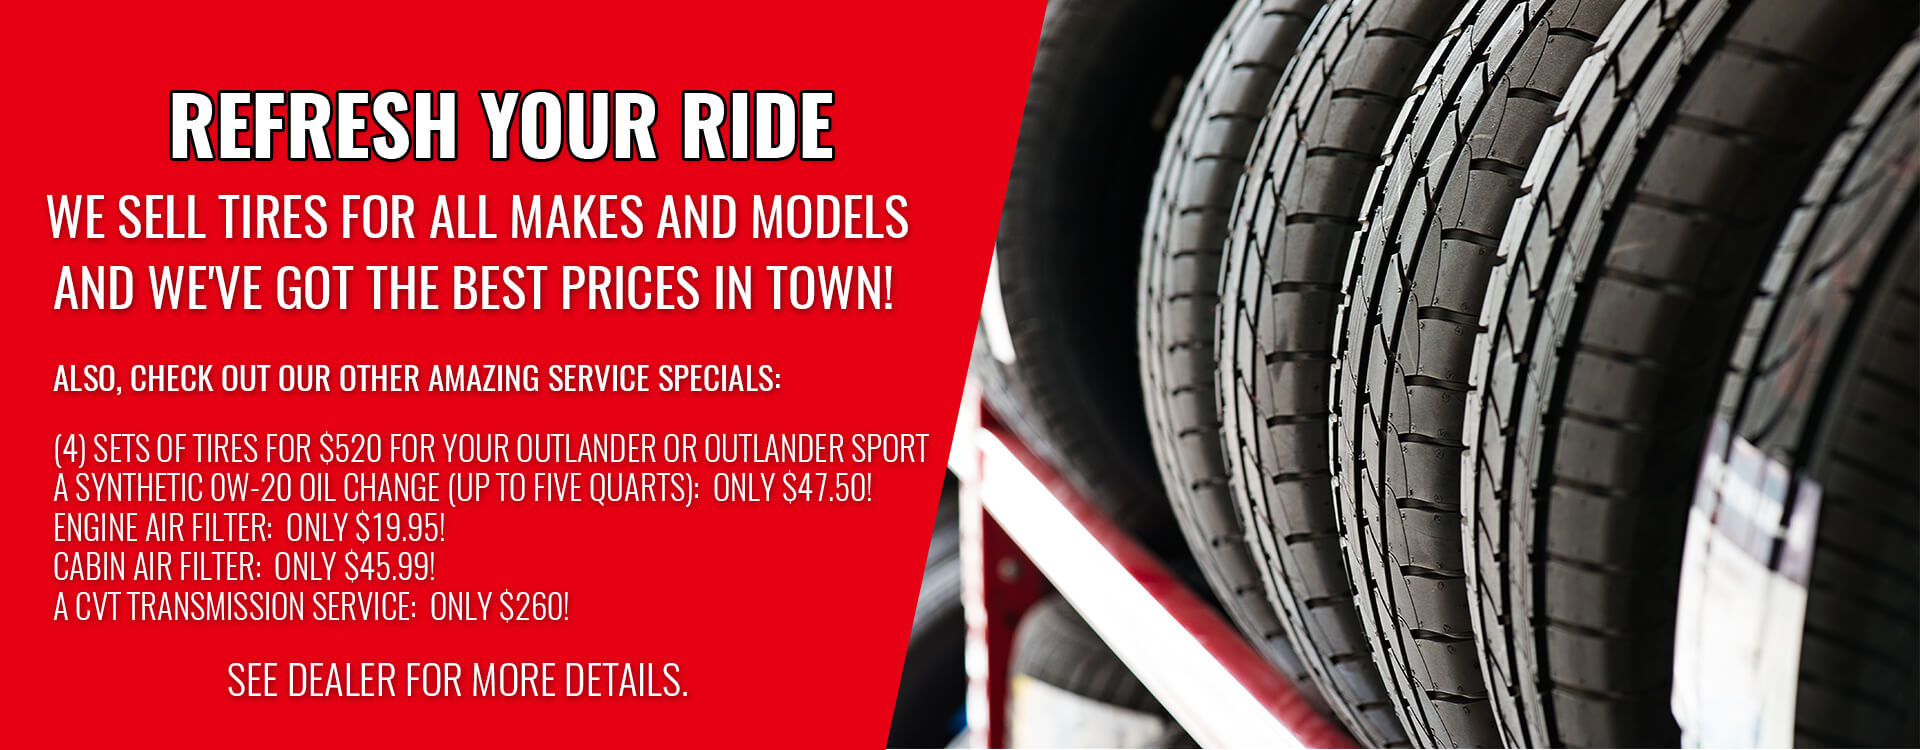 Tires and Service Specials